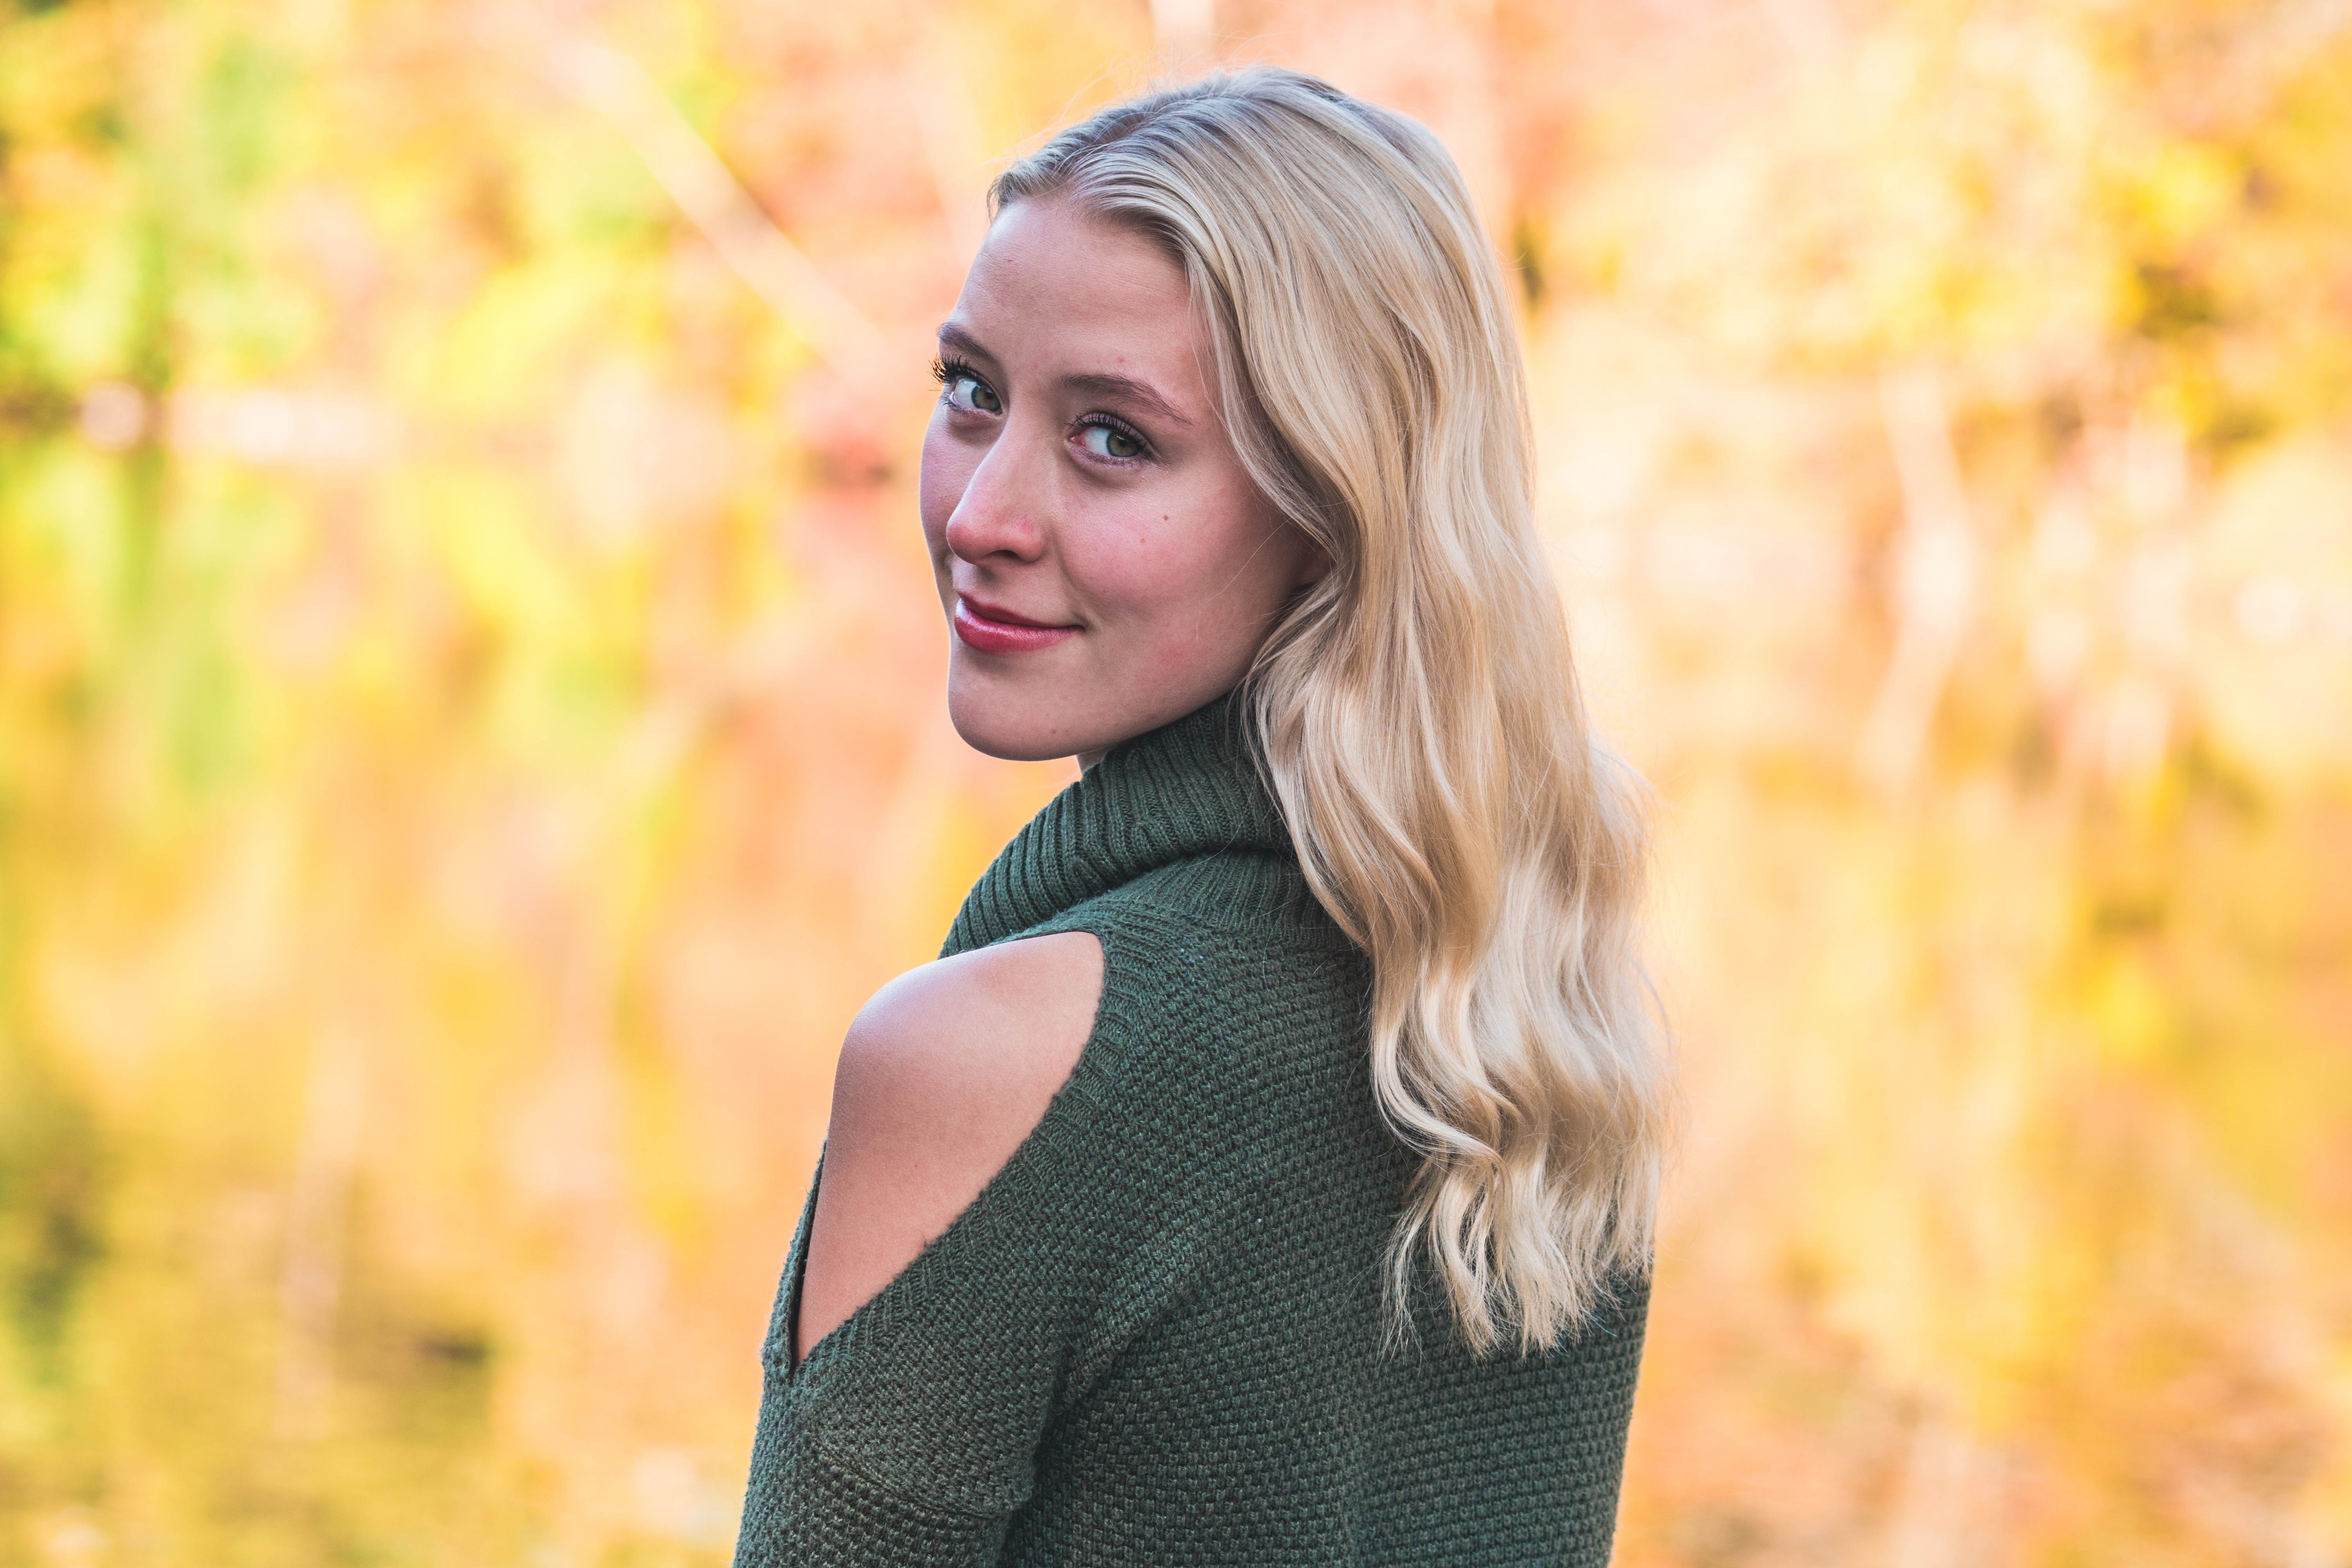 blonde-haired woman smiling while taking photo